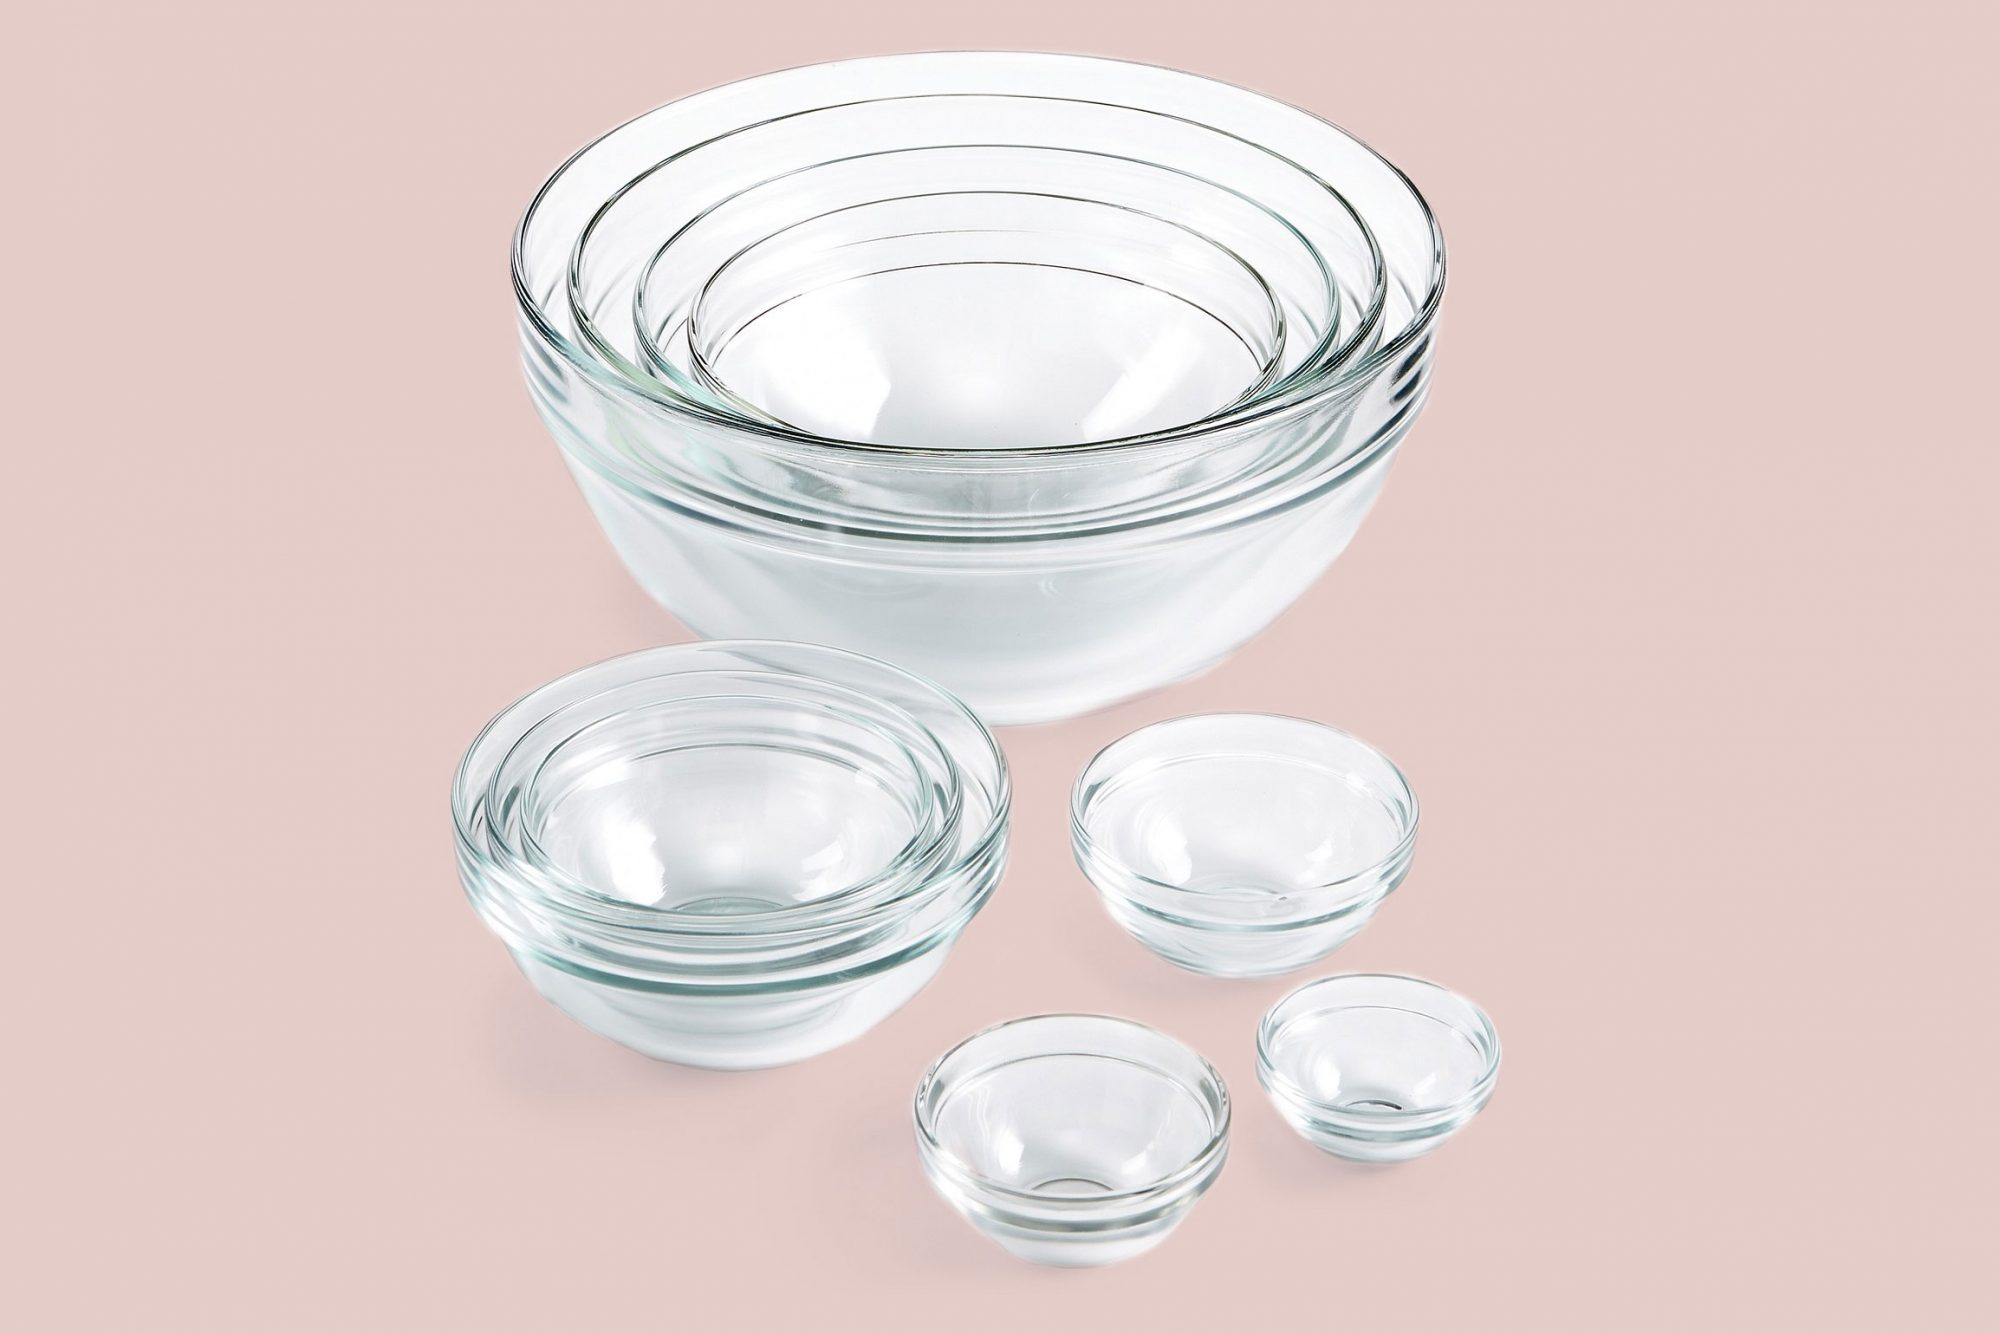 martha stewart collection glass cooking bowl set